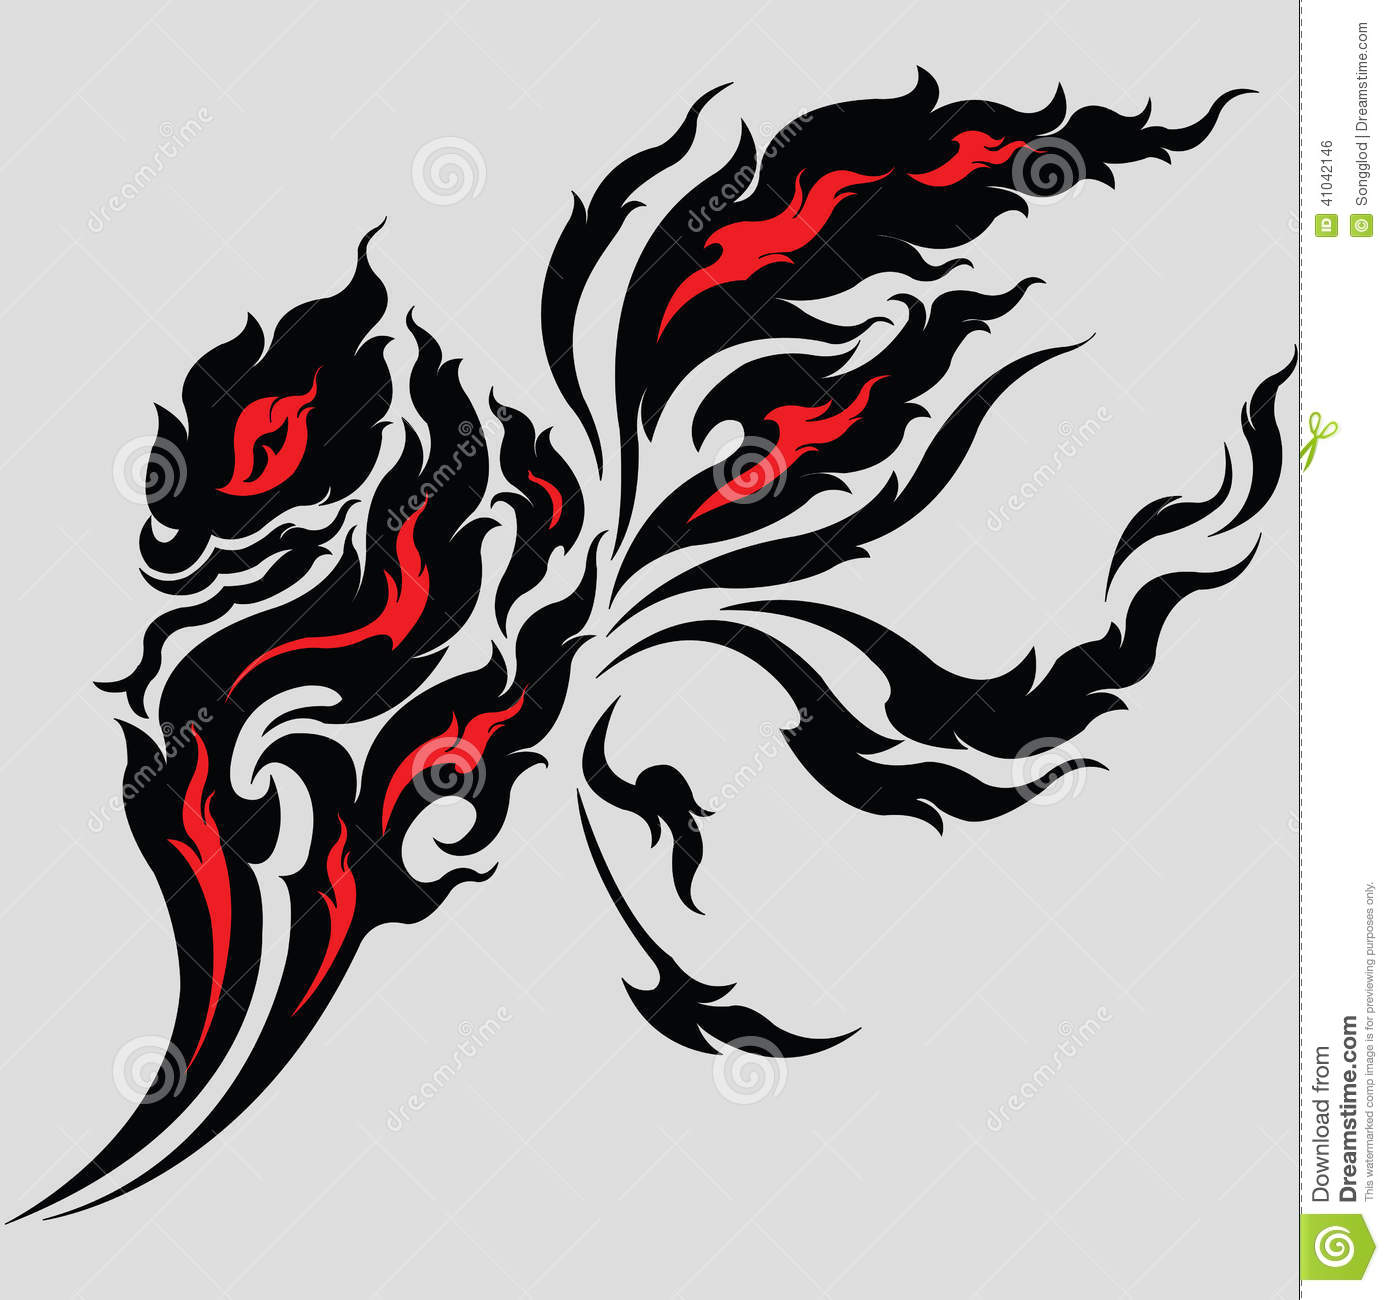 Traditional Japanese House Plans Tribal Dragon Tattoo Design Stock Vector Image 41042146